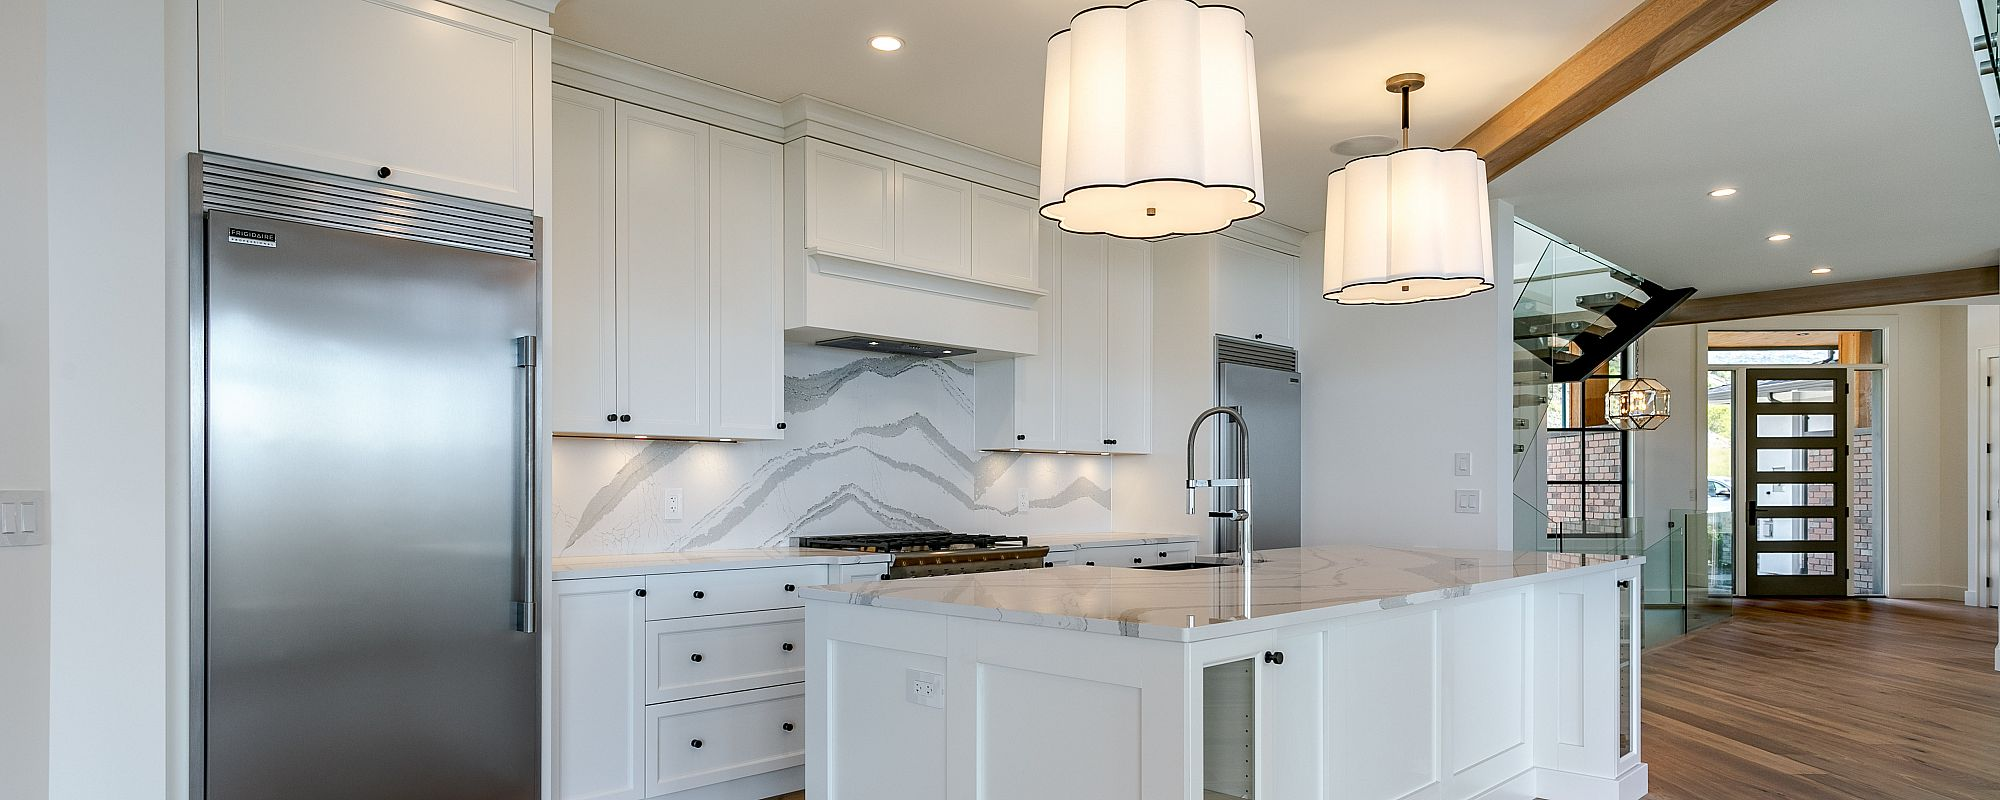 Marble style backsplash in bright kitchen with glass front door in background